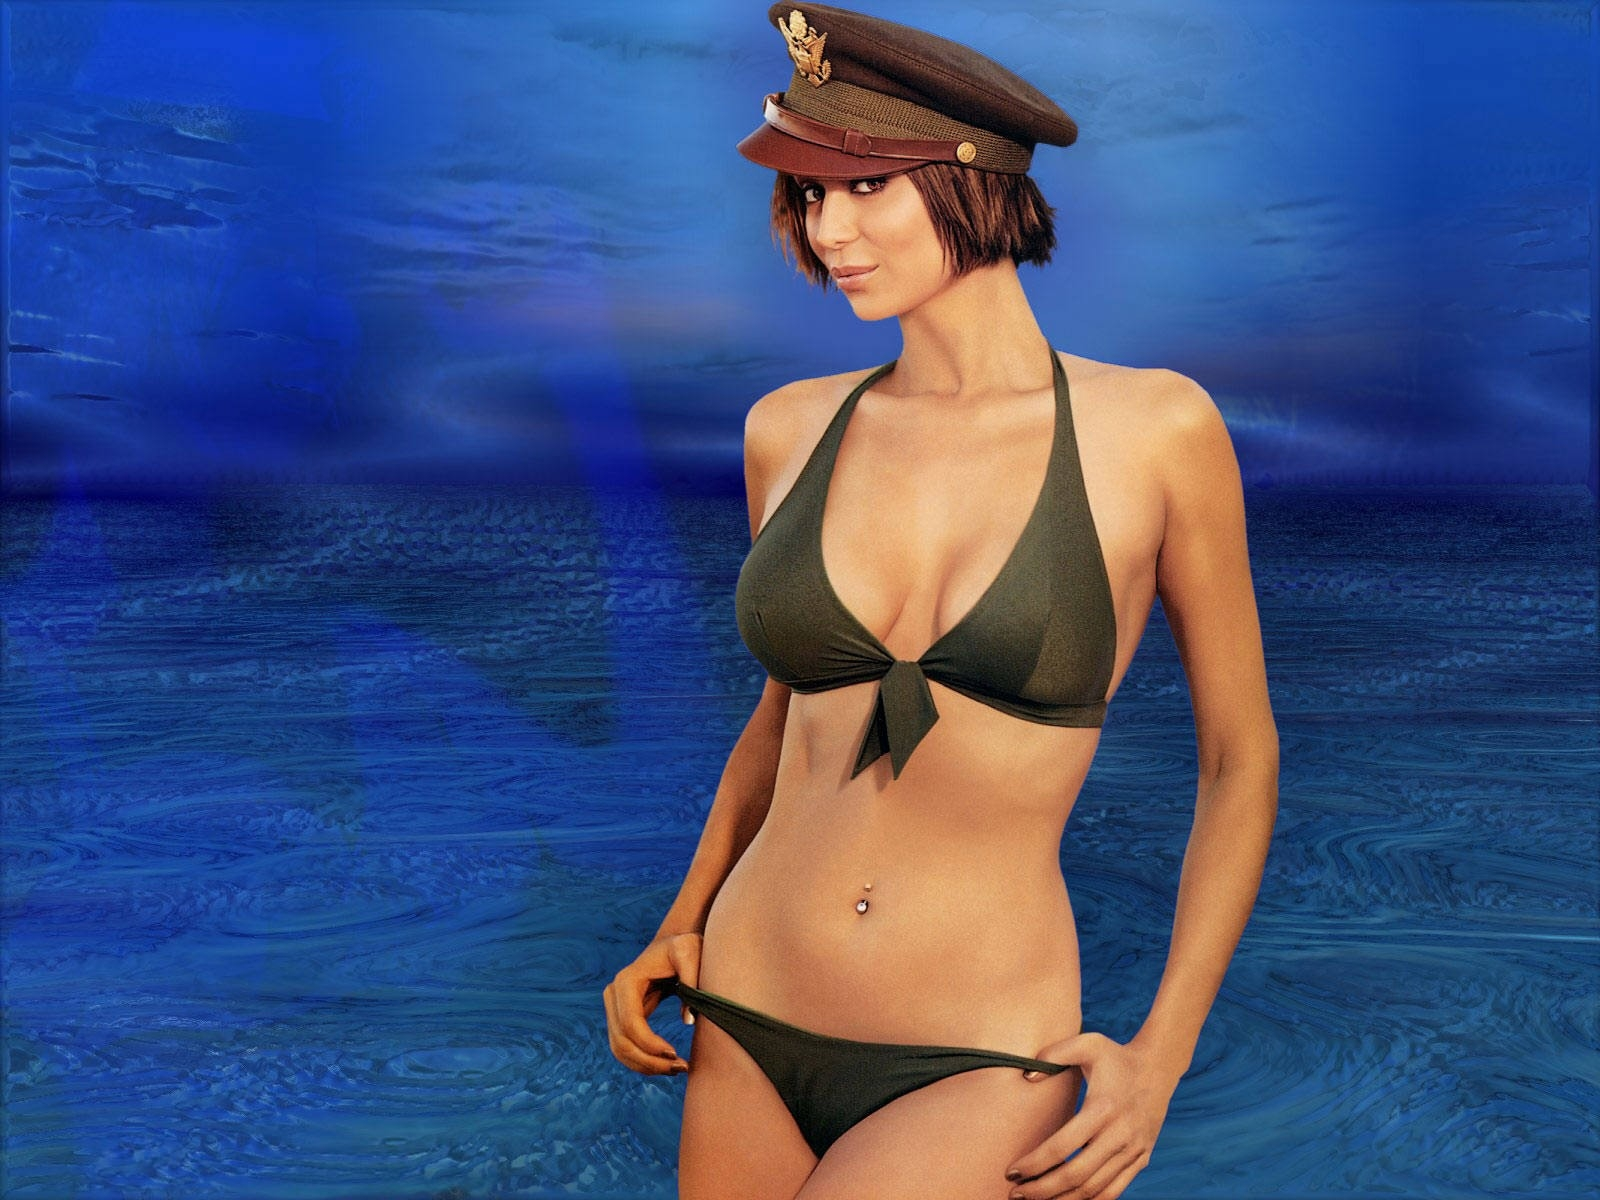 Wallpaper di Catherine Bell in versione sexy-militare